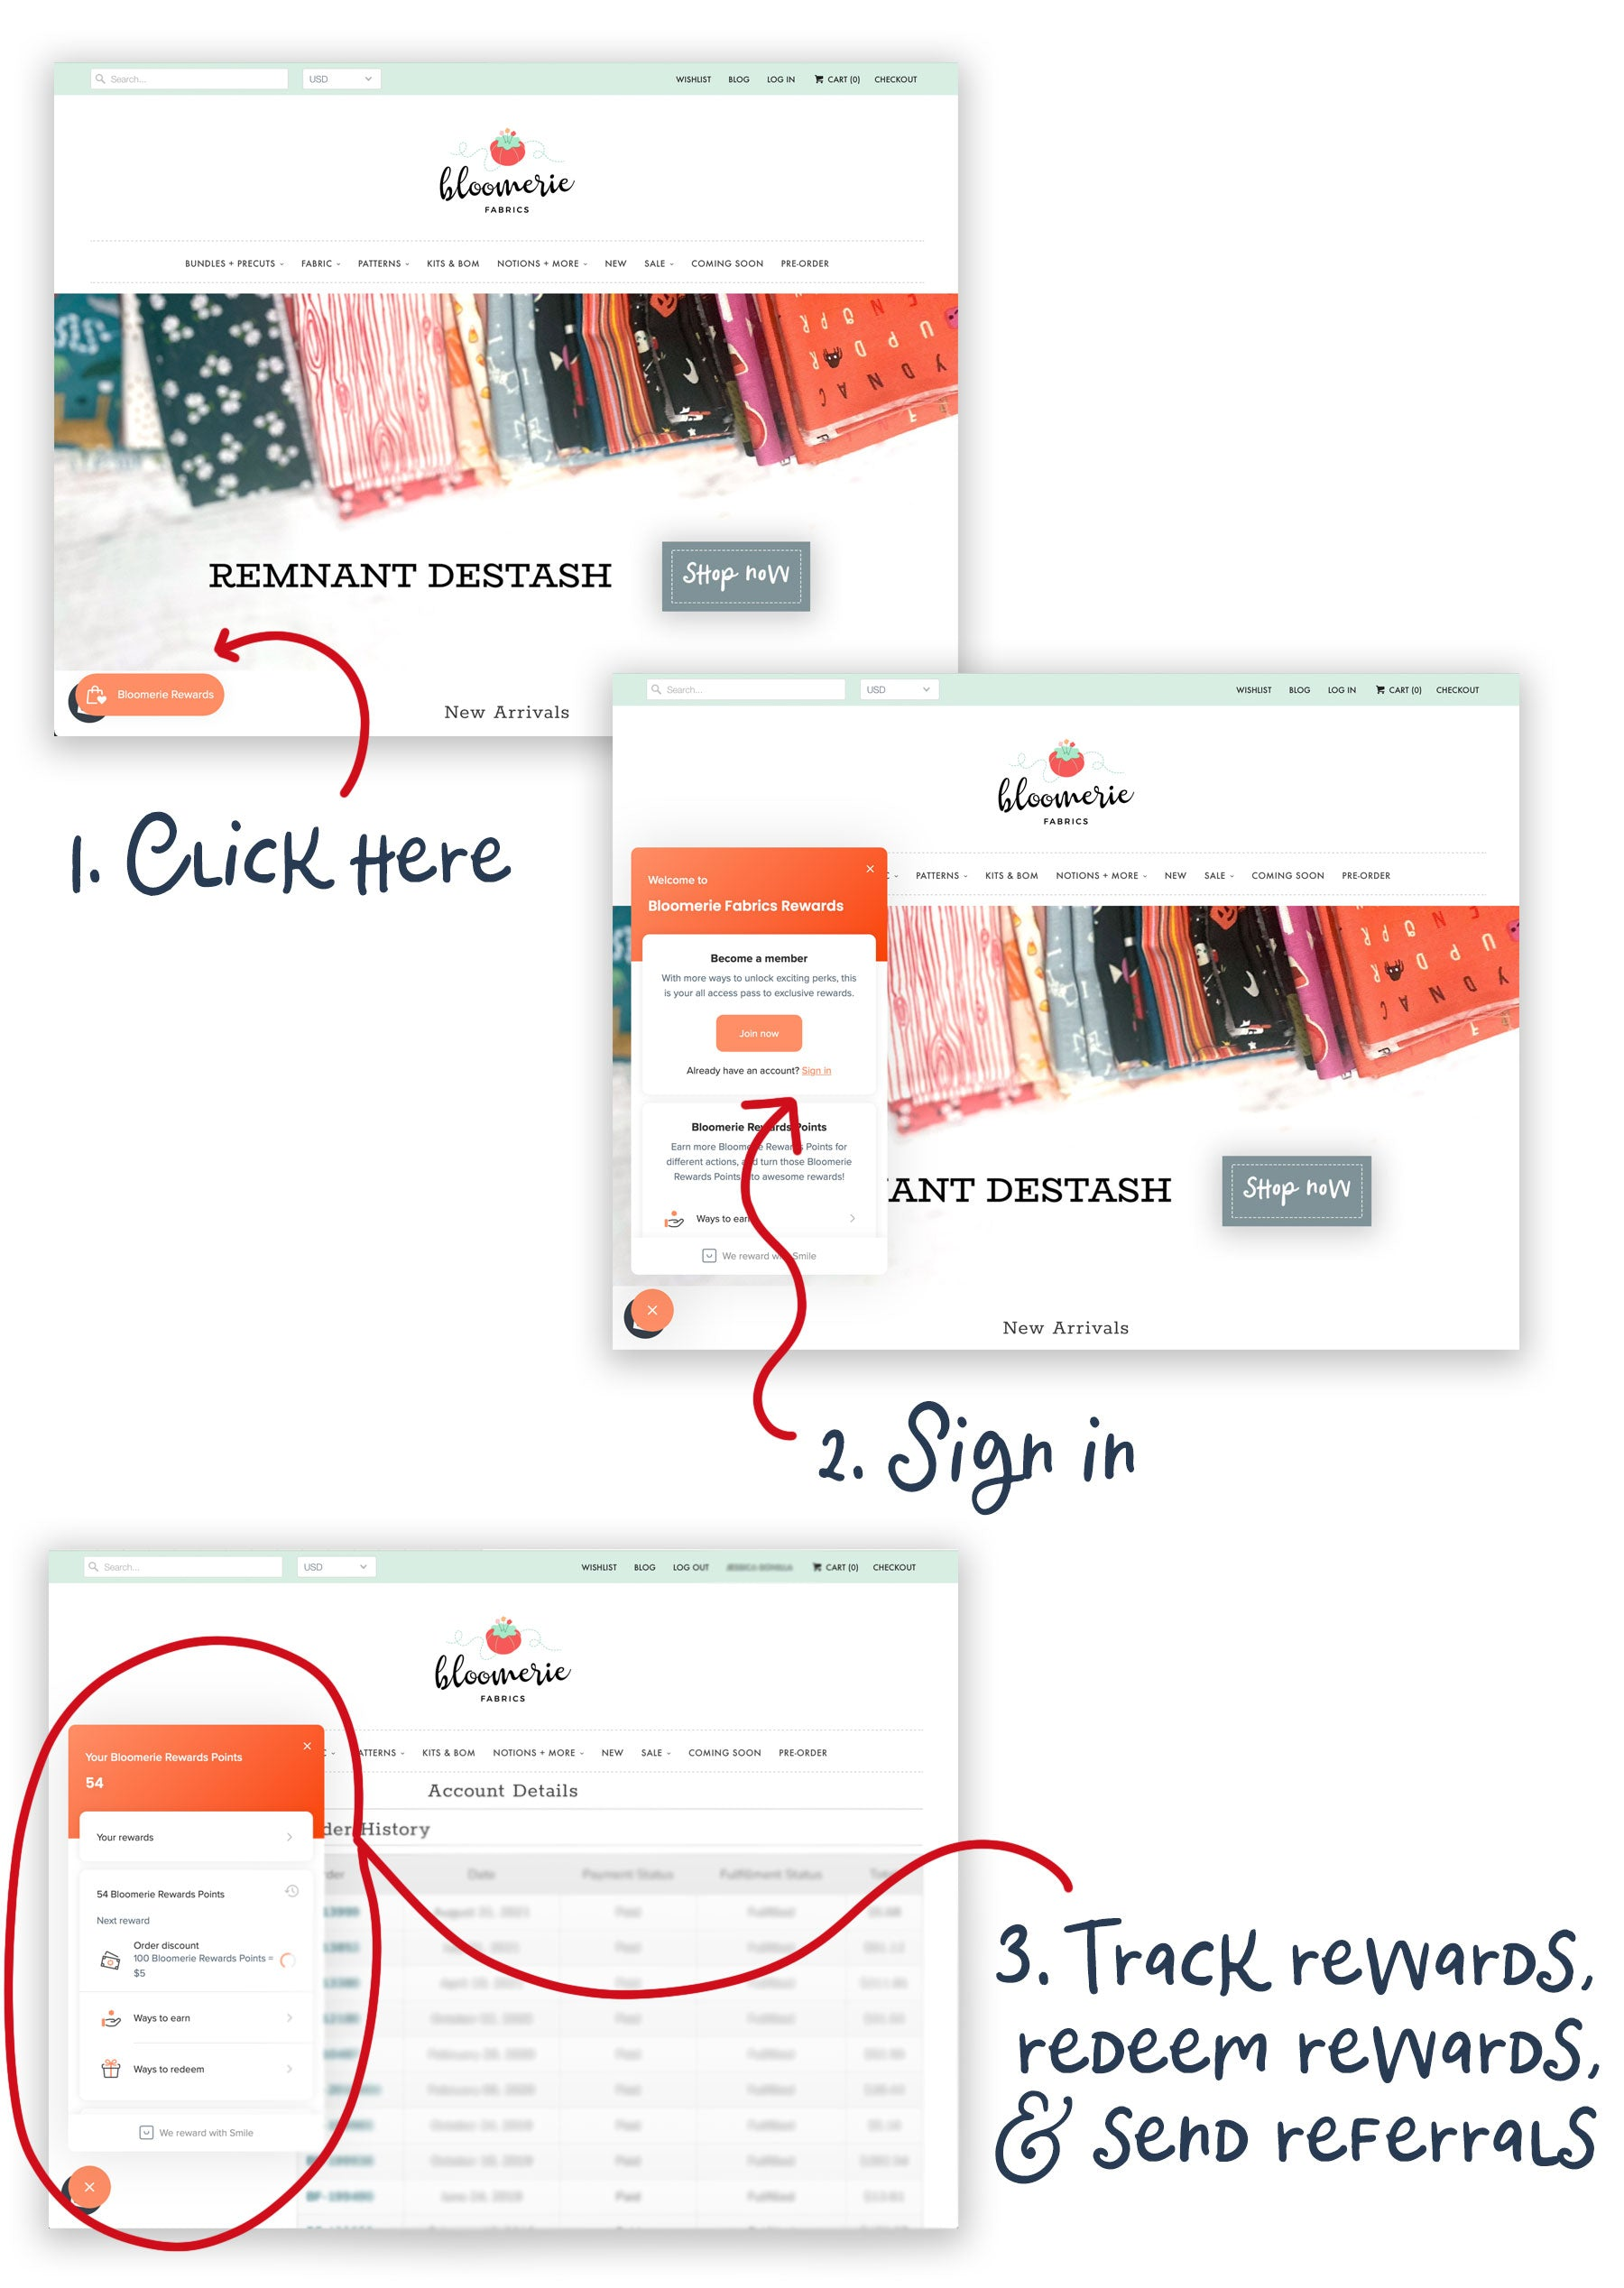 How to log in and redeem Bloomerie Rewards